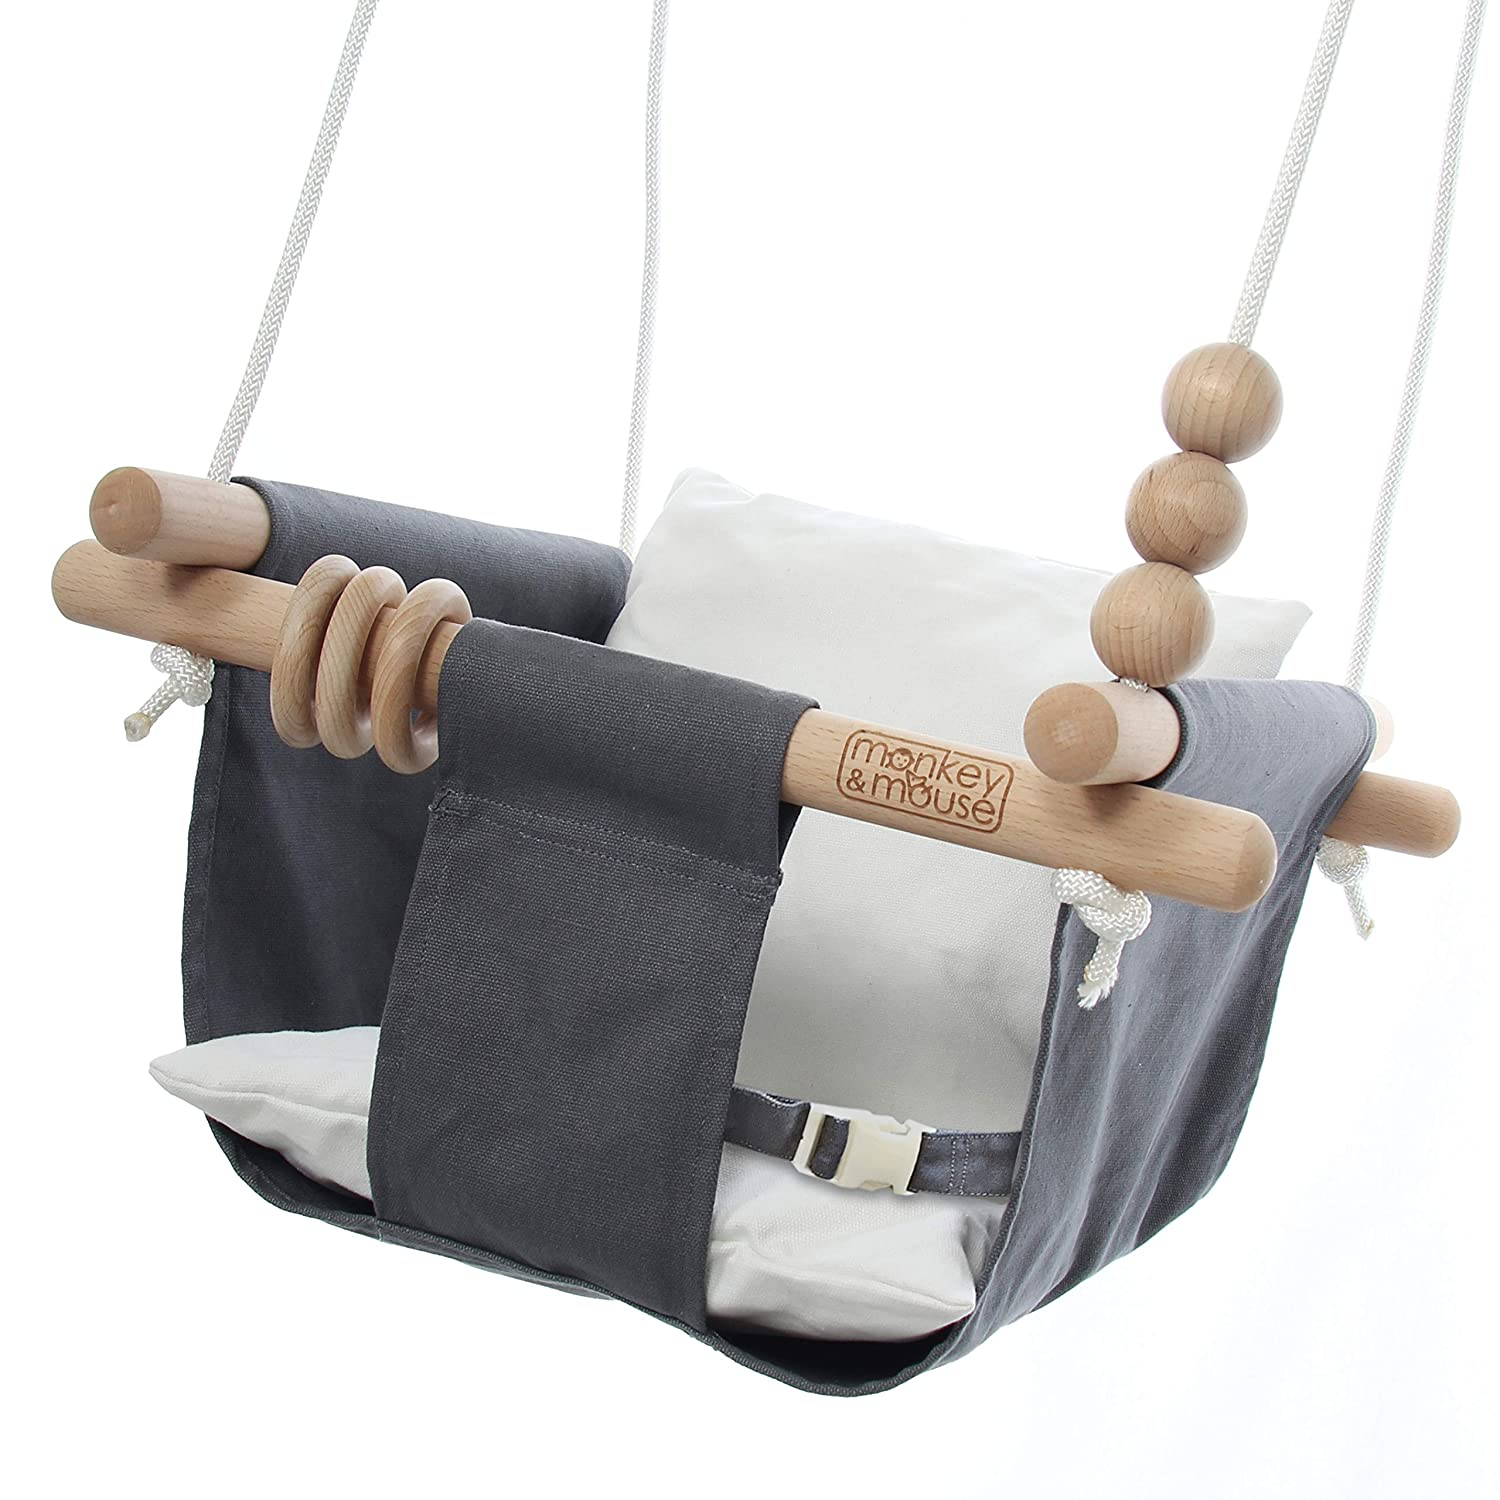 The Best baby swing seat - Our pick